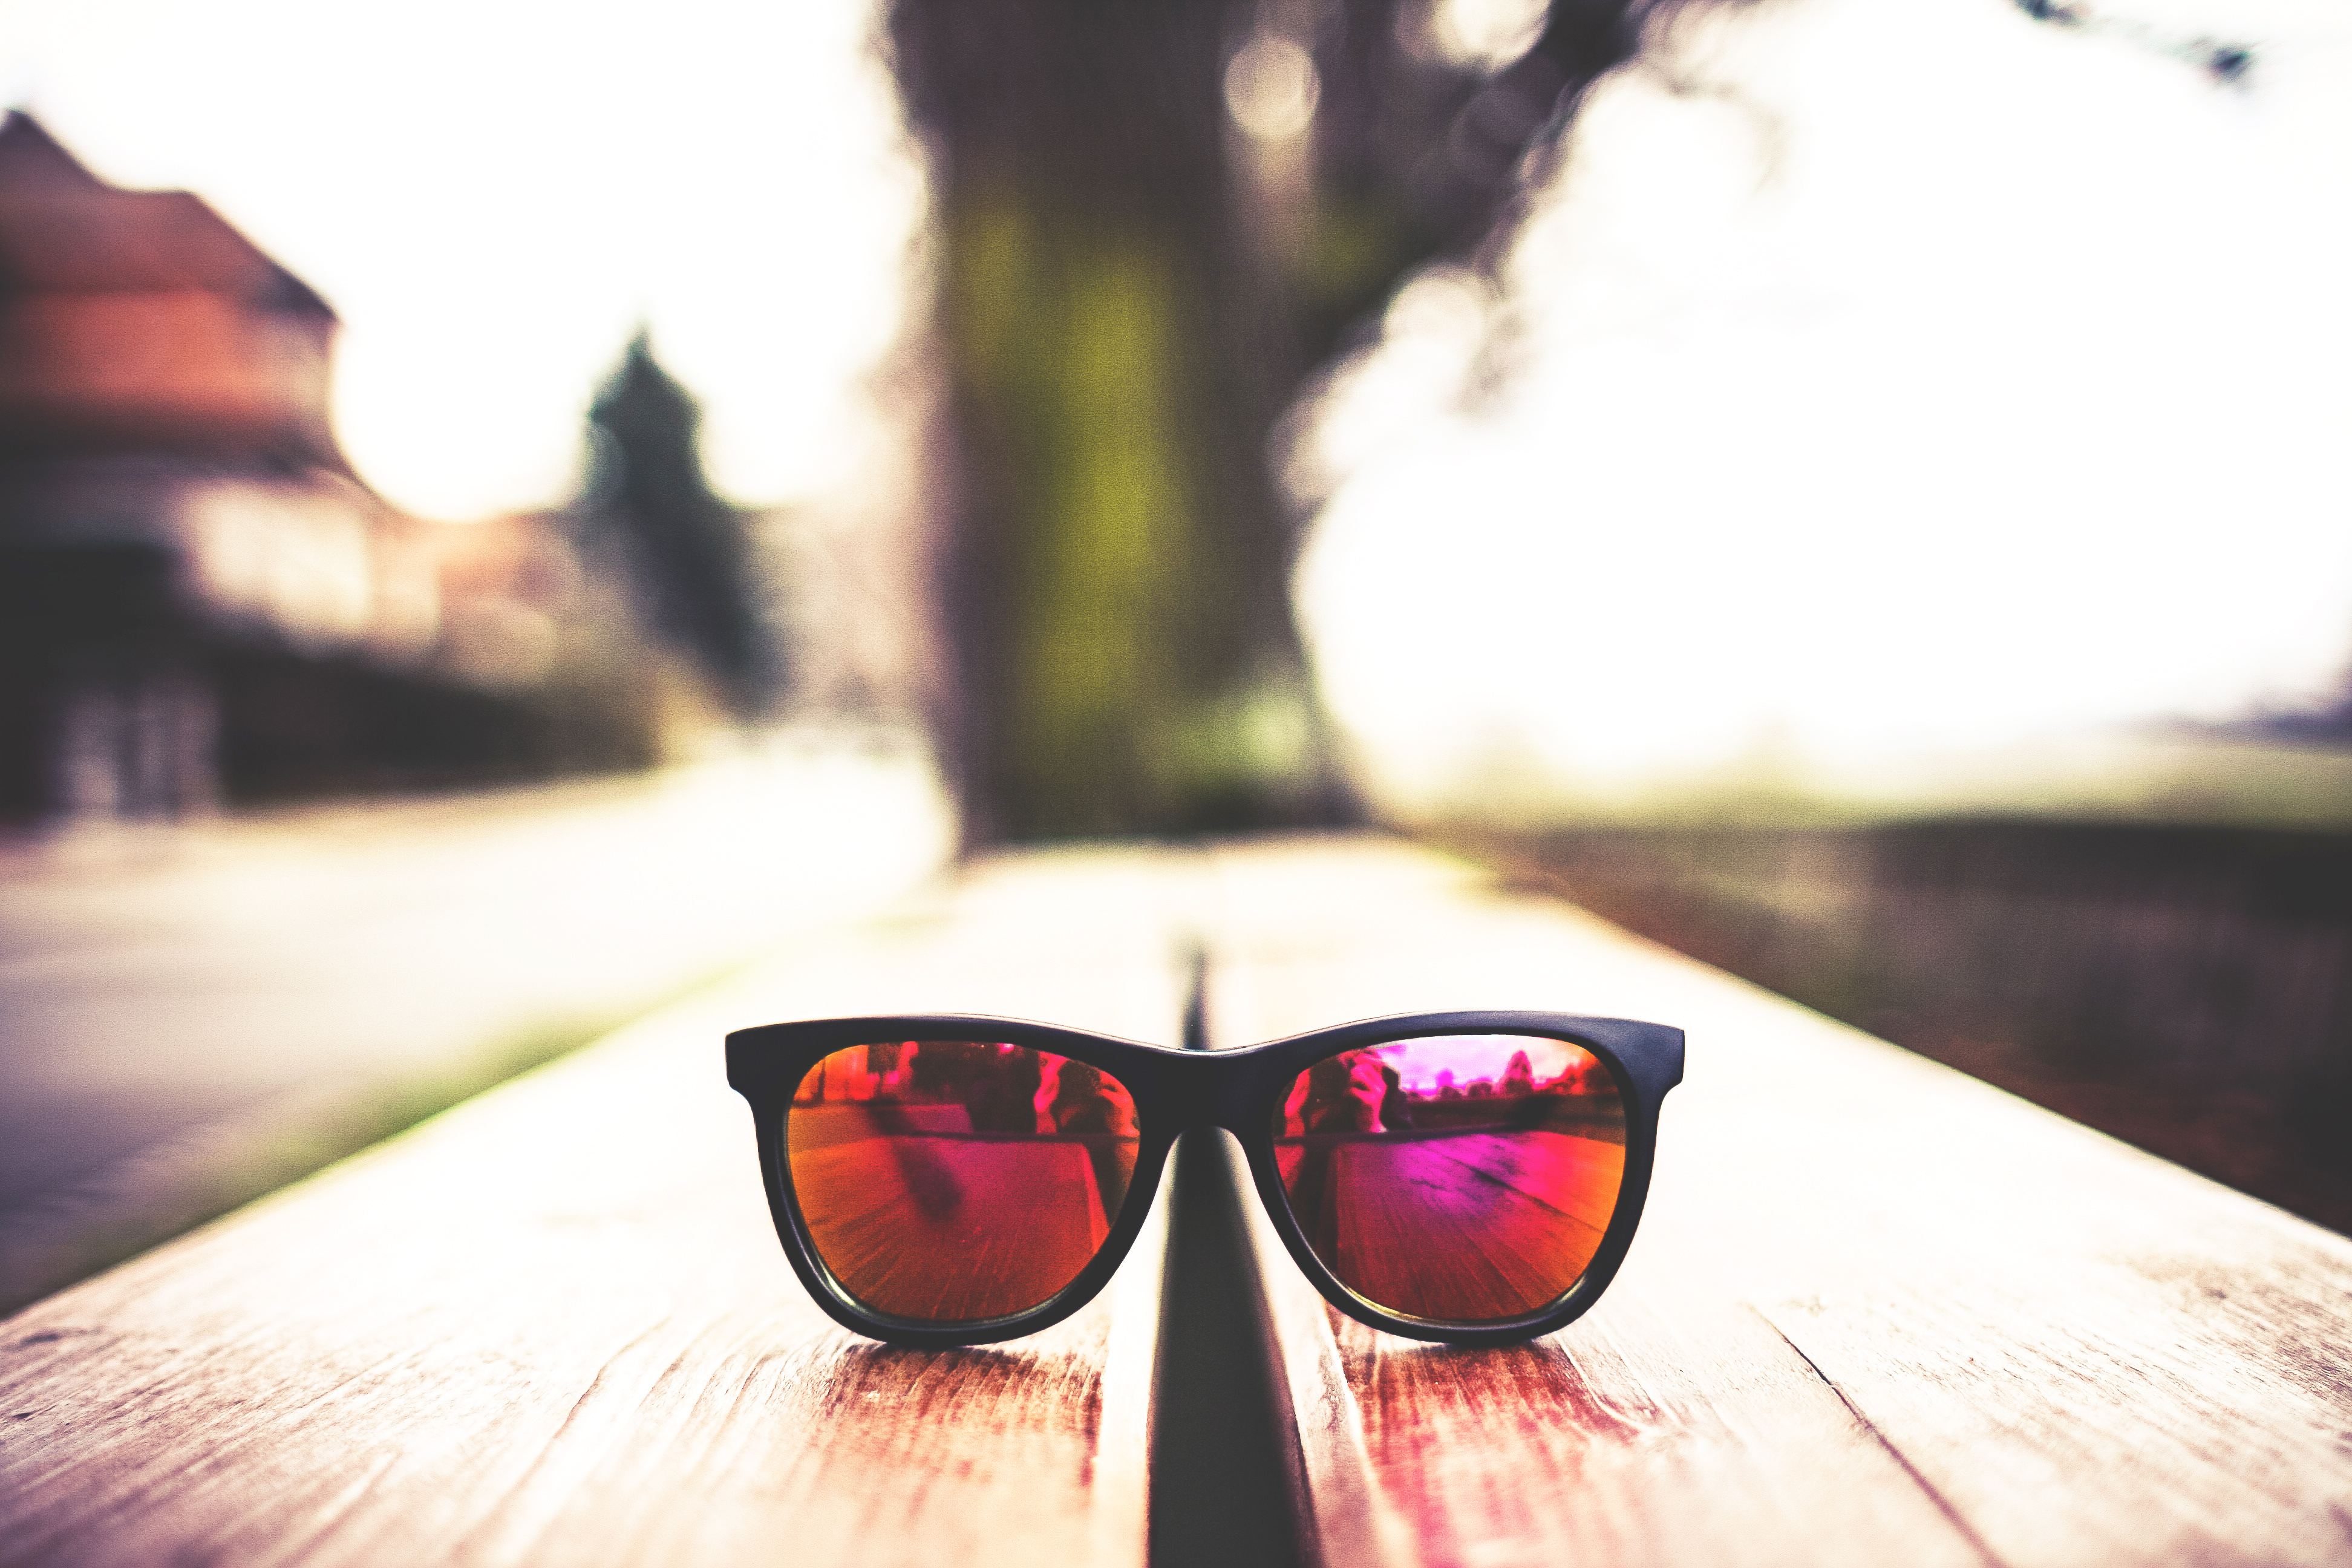 red-fashion-glasses-on-wooden-table-picjumbo-com